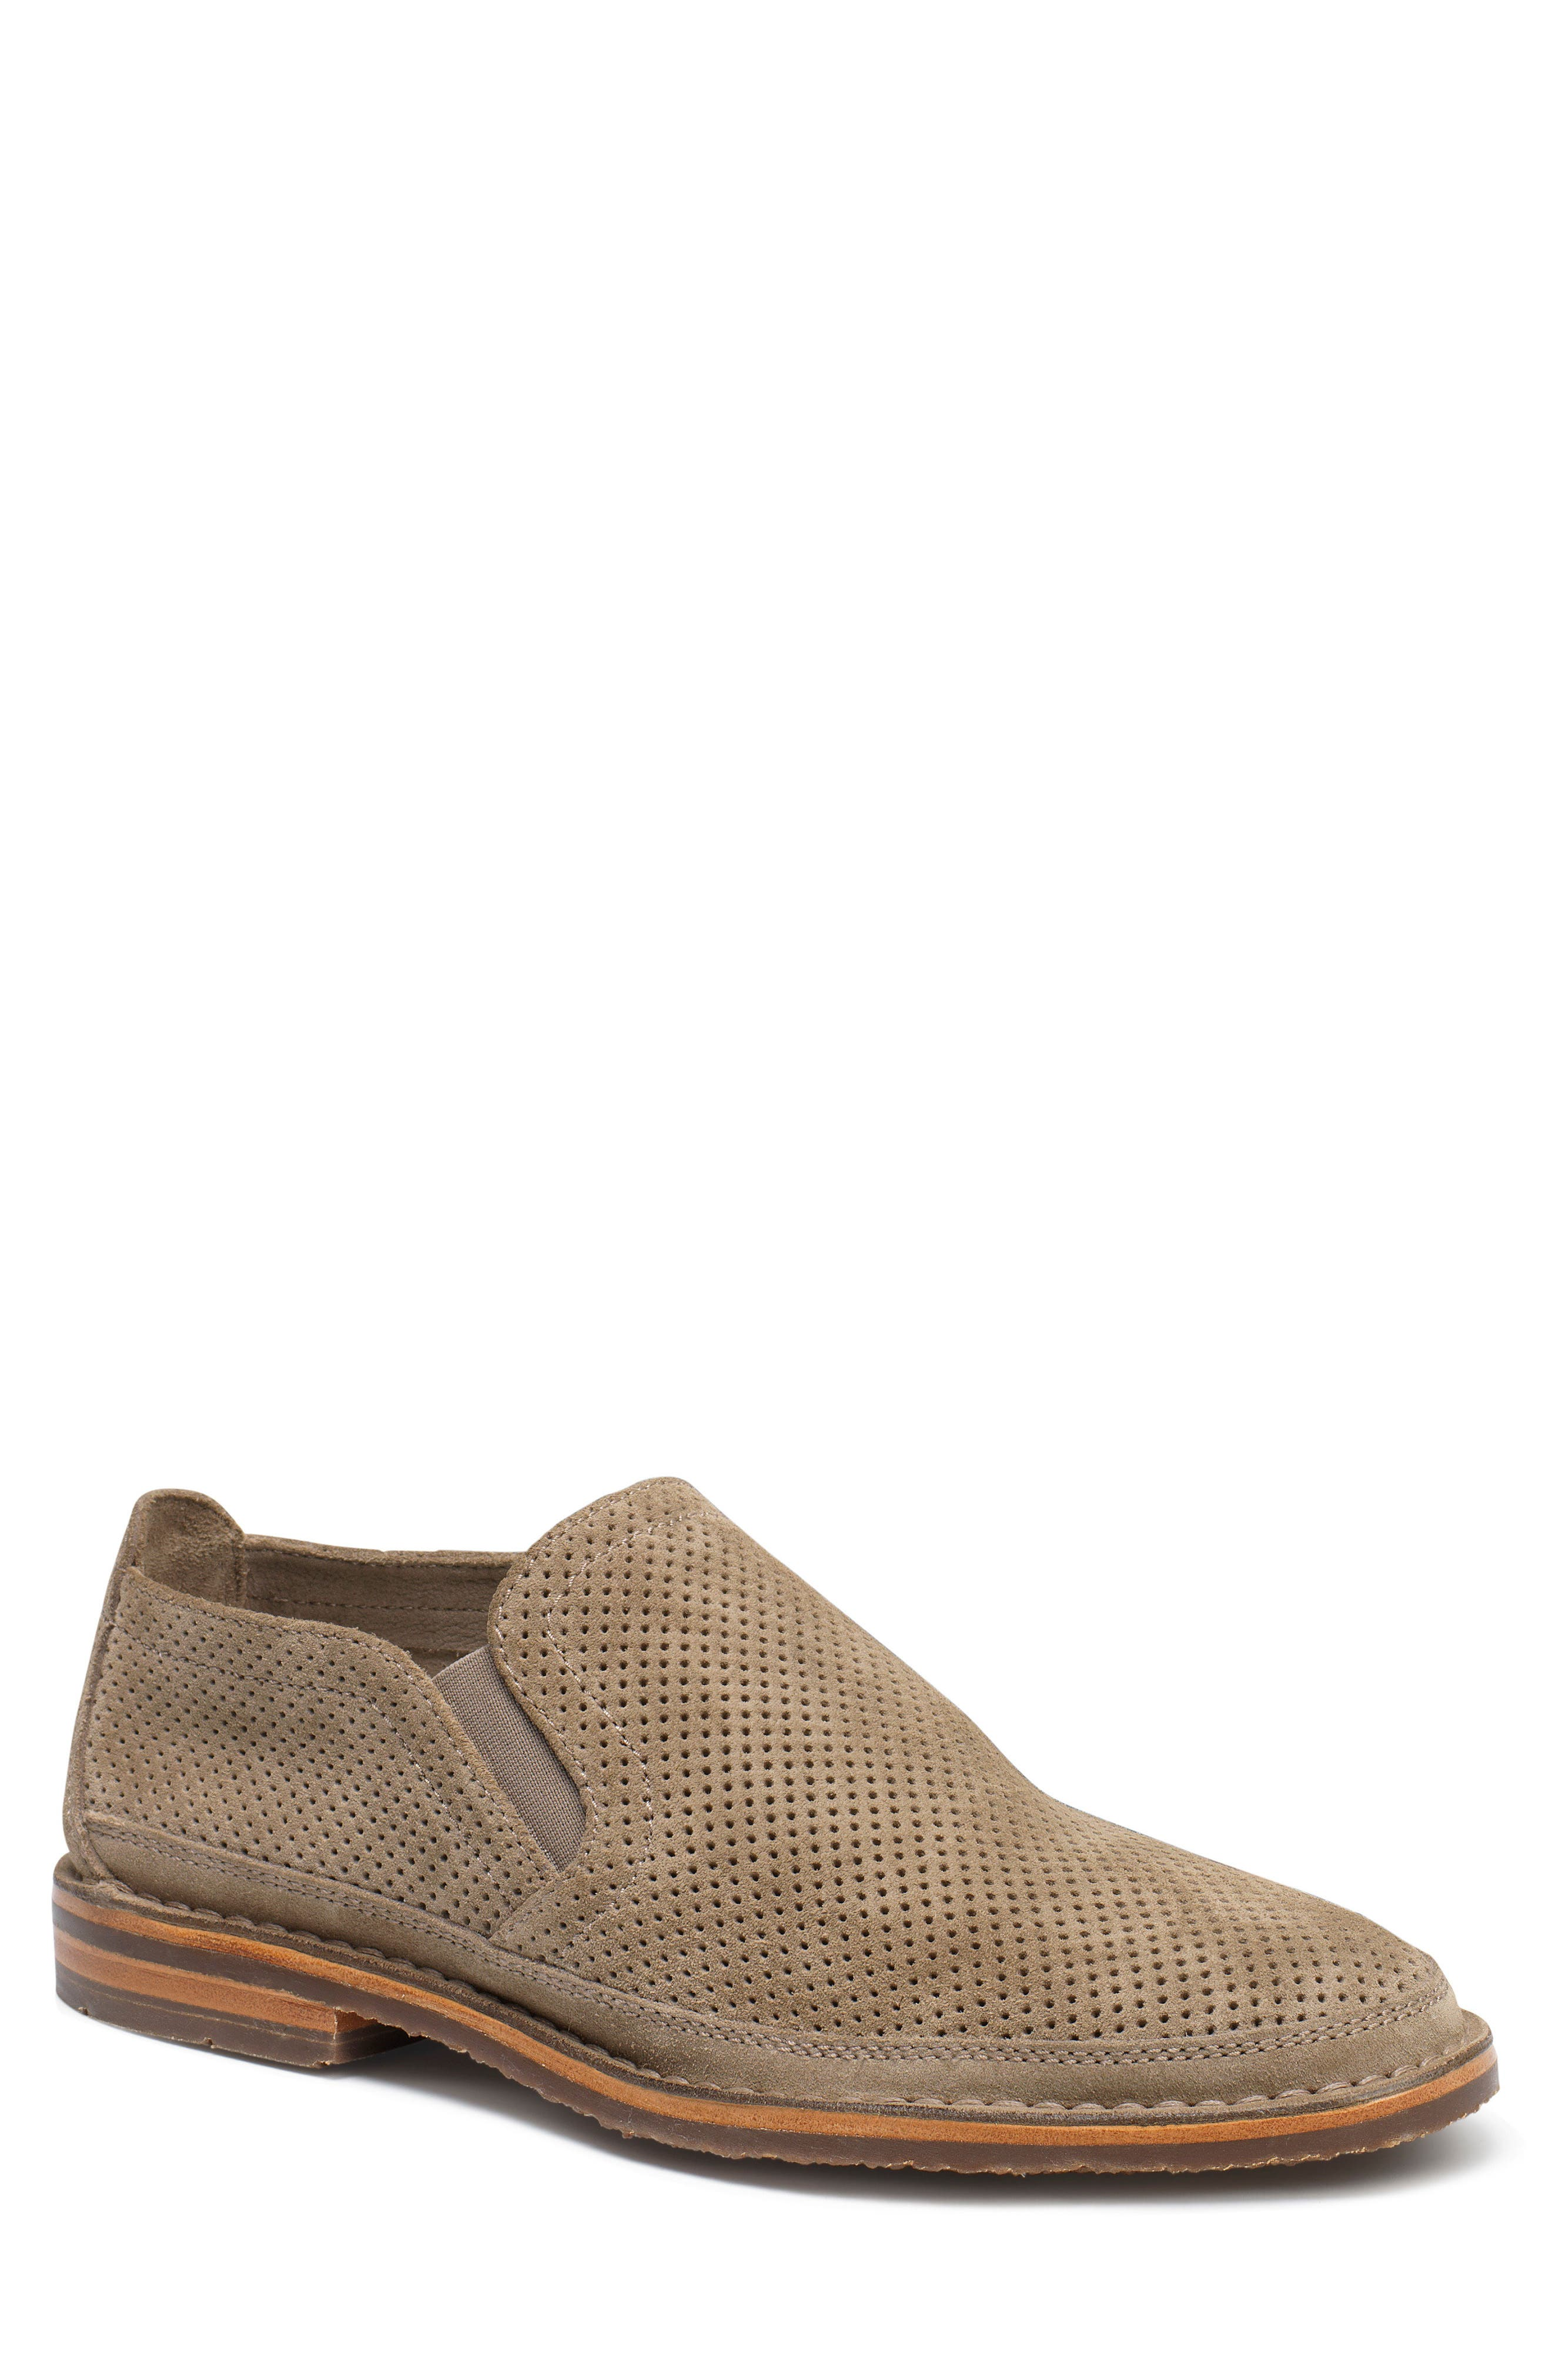 TRASK Bradley Perforated Slip-On, Main, color, TAUPE SUEDE